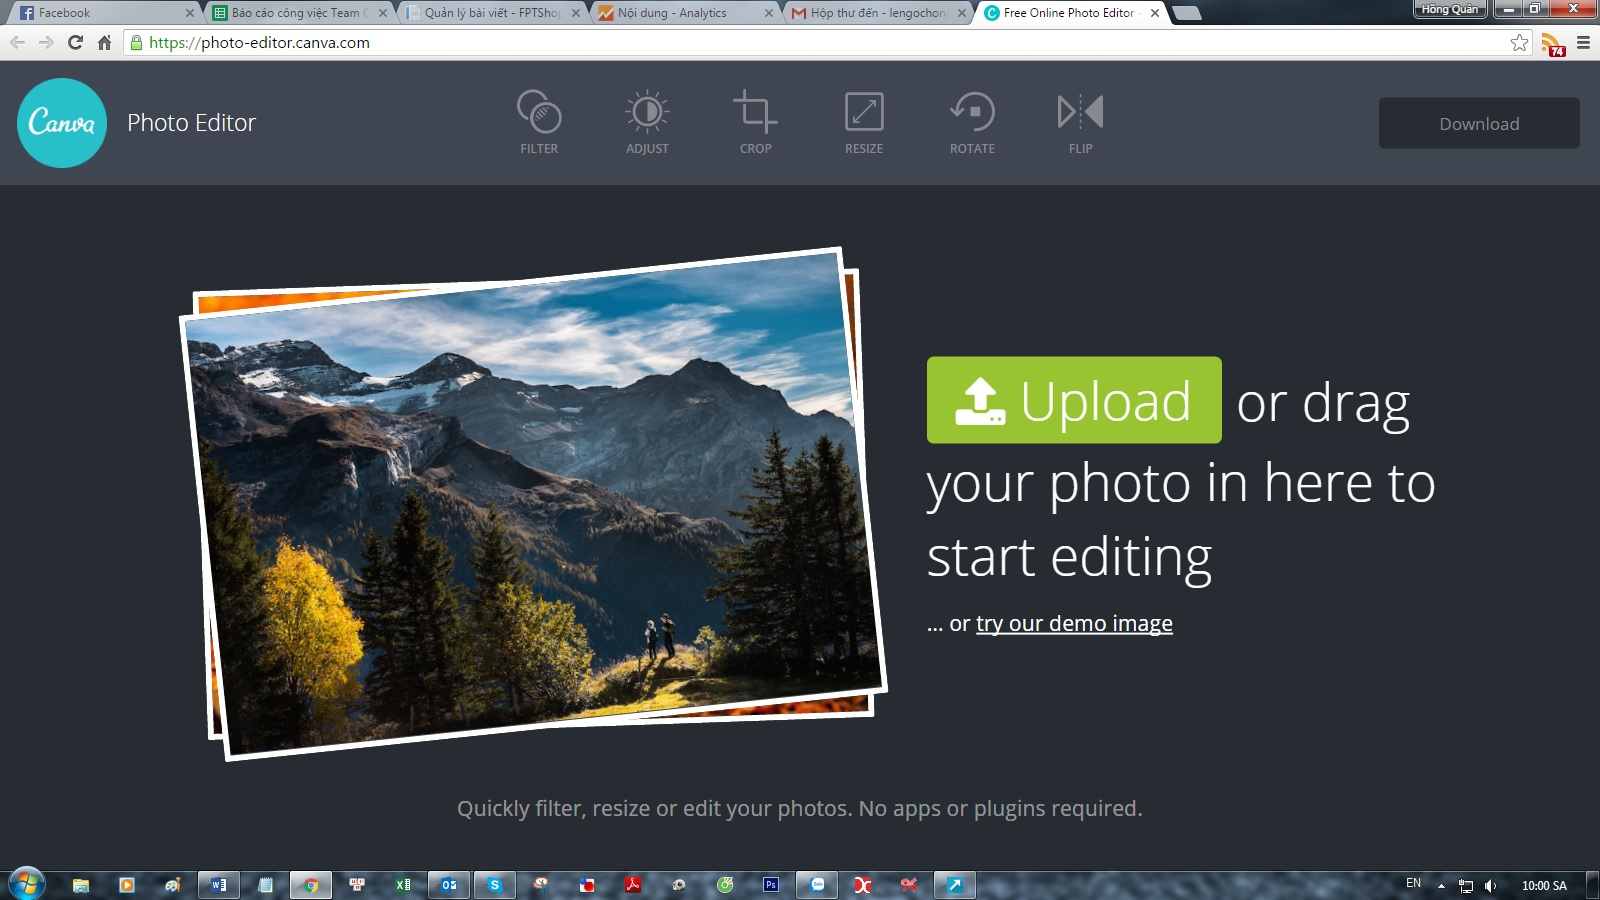 Canva Photo Editor